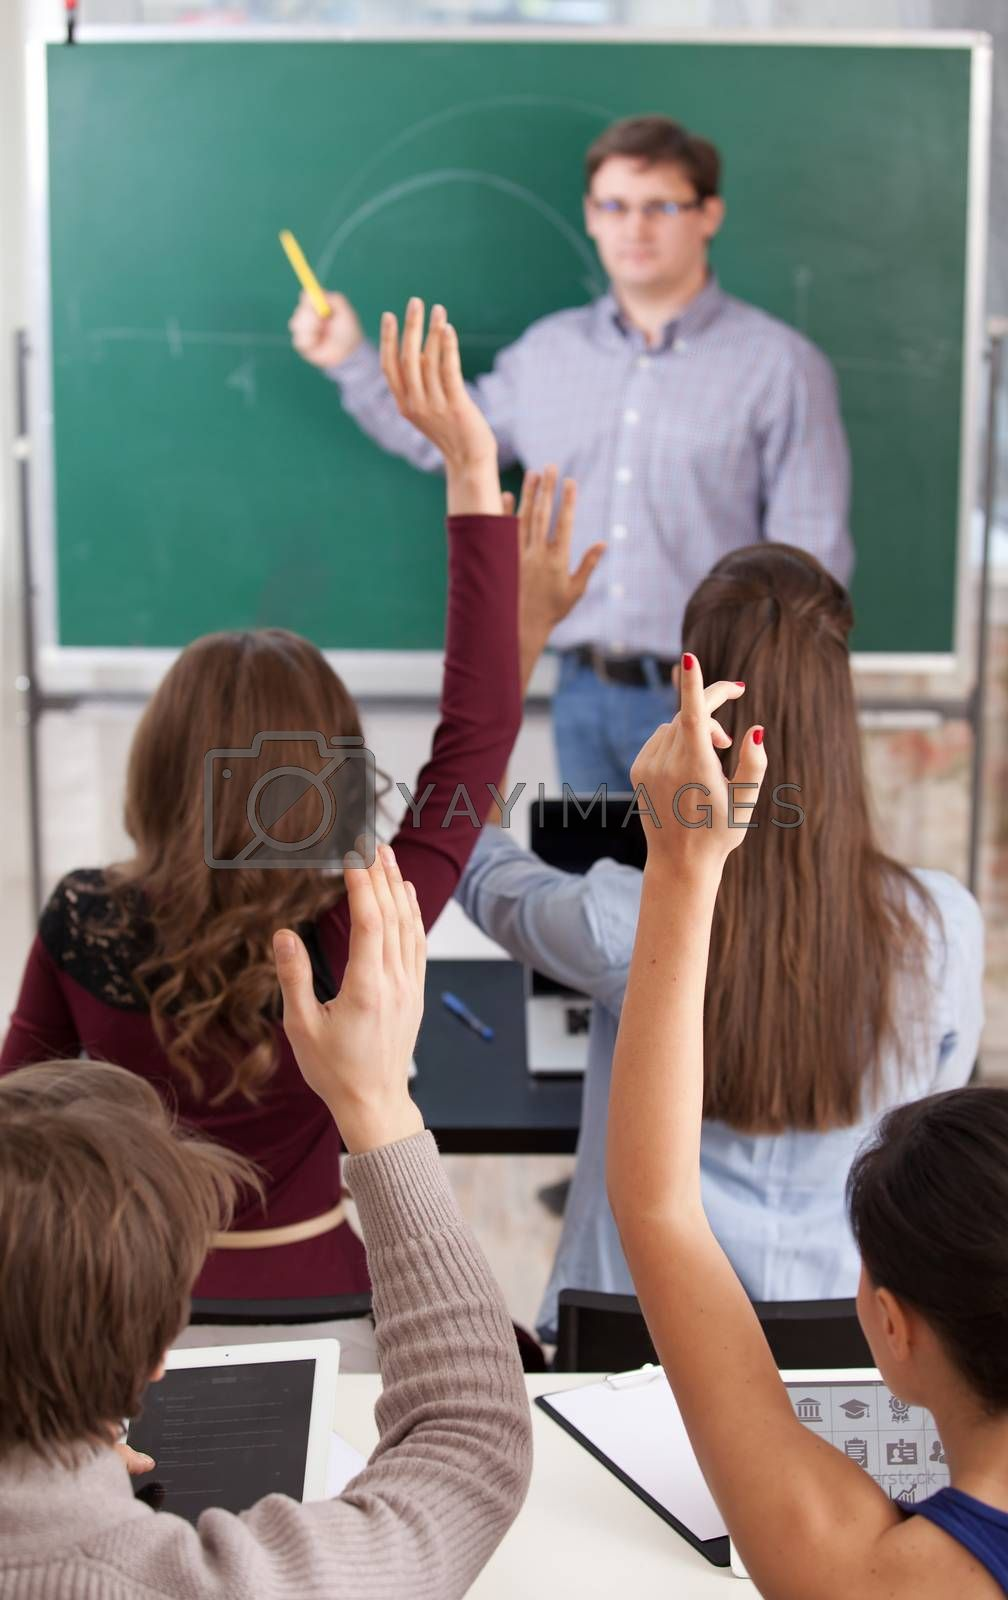 colledge students in classroom at lesson